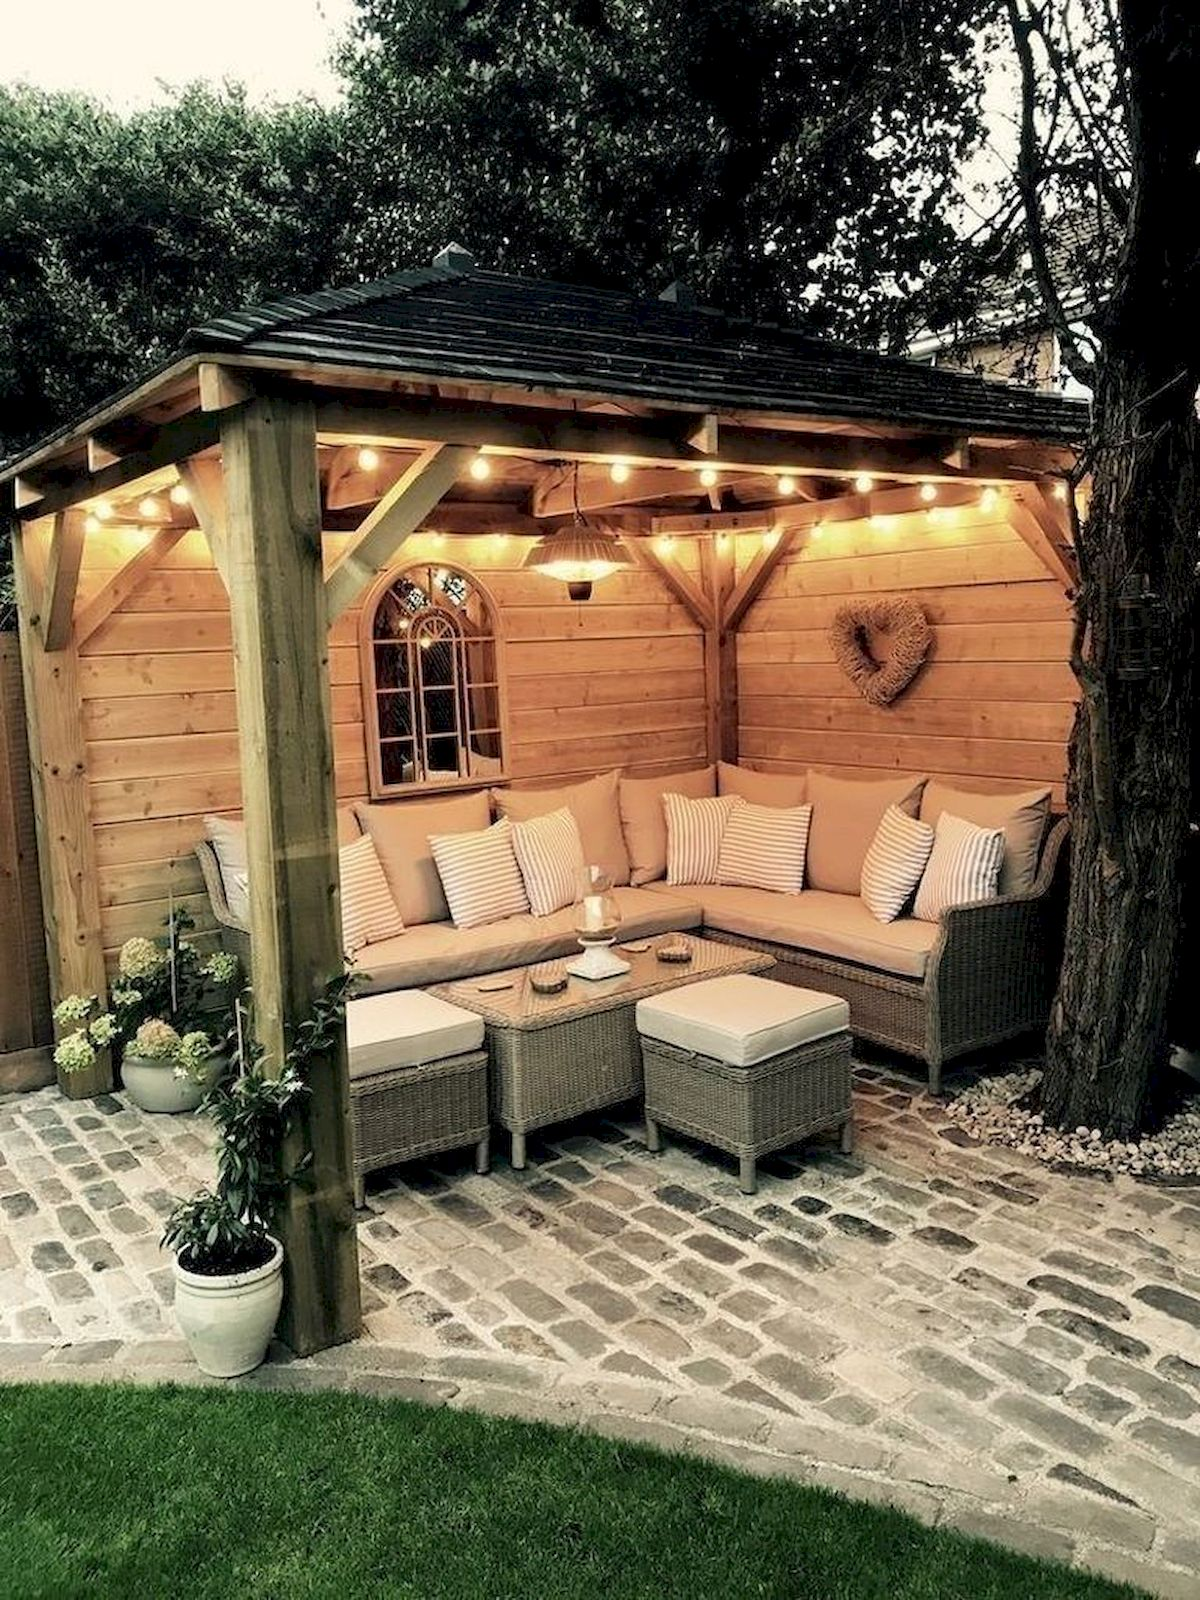 30 Best Small Backyard Patio Ideas (5) - Googodecor on Small Outdoor Patio Ideas id=89668